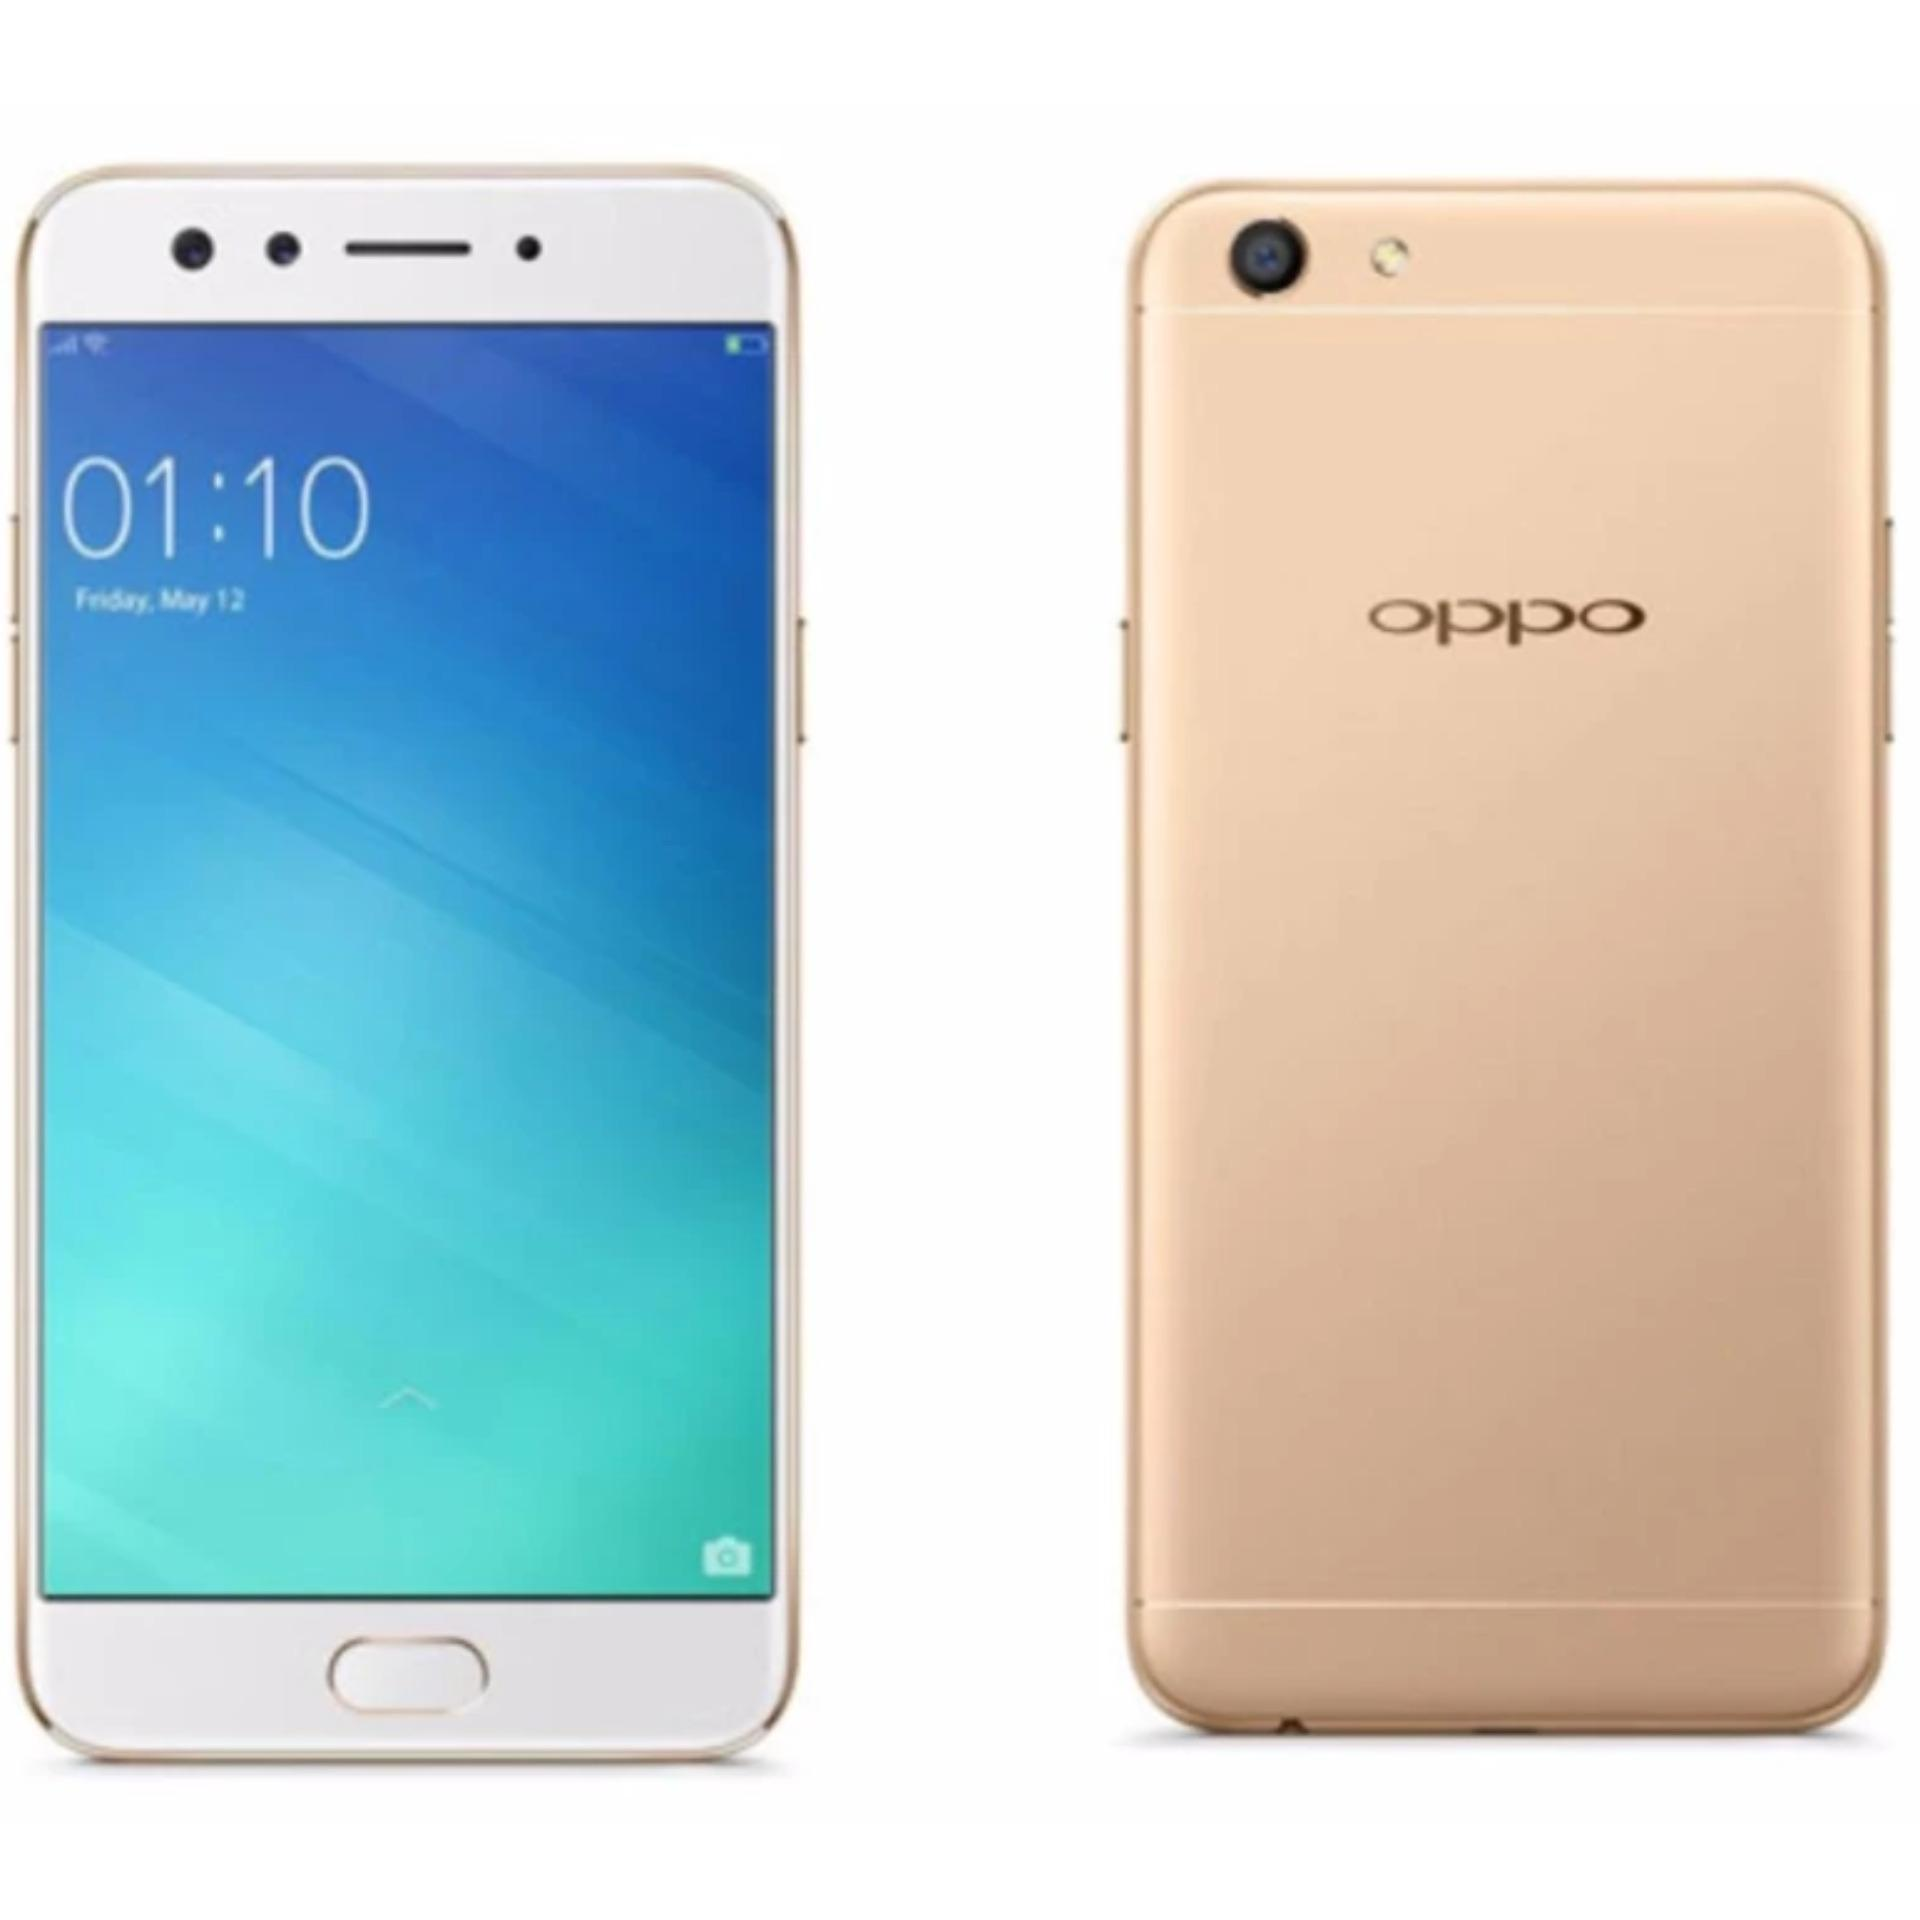 Oppo F3 - Gold   - Selfie Expert - Dual Front Camera - Ram 4GB - Rom 64GB